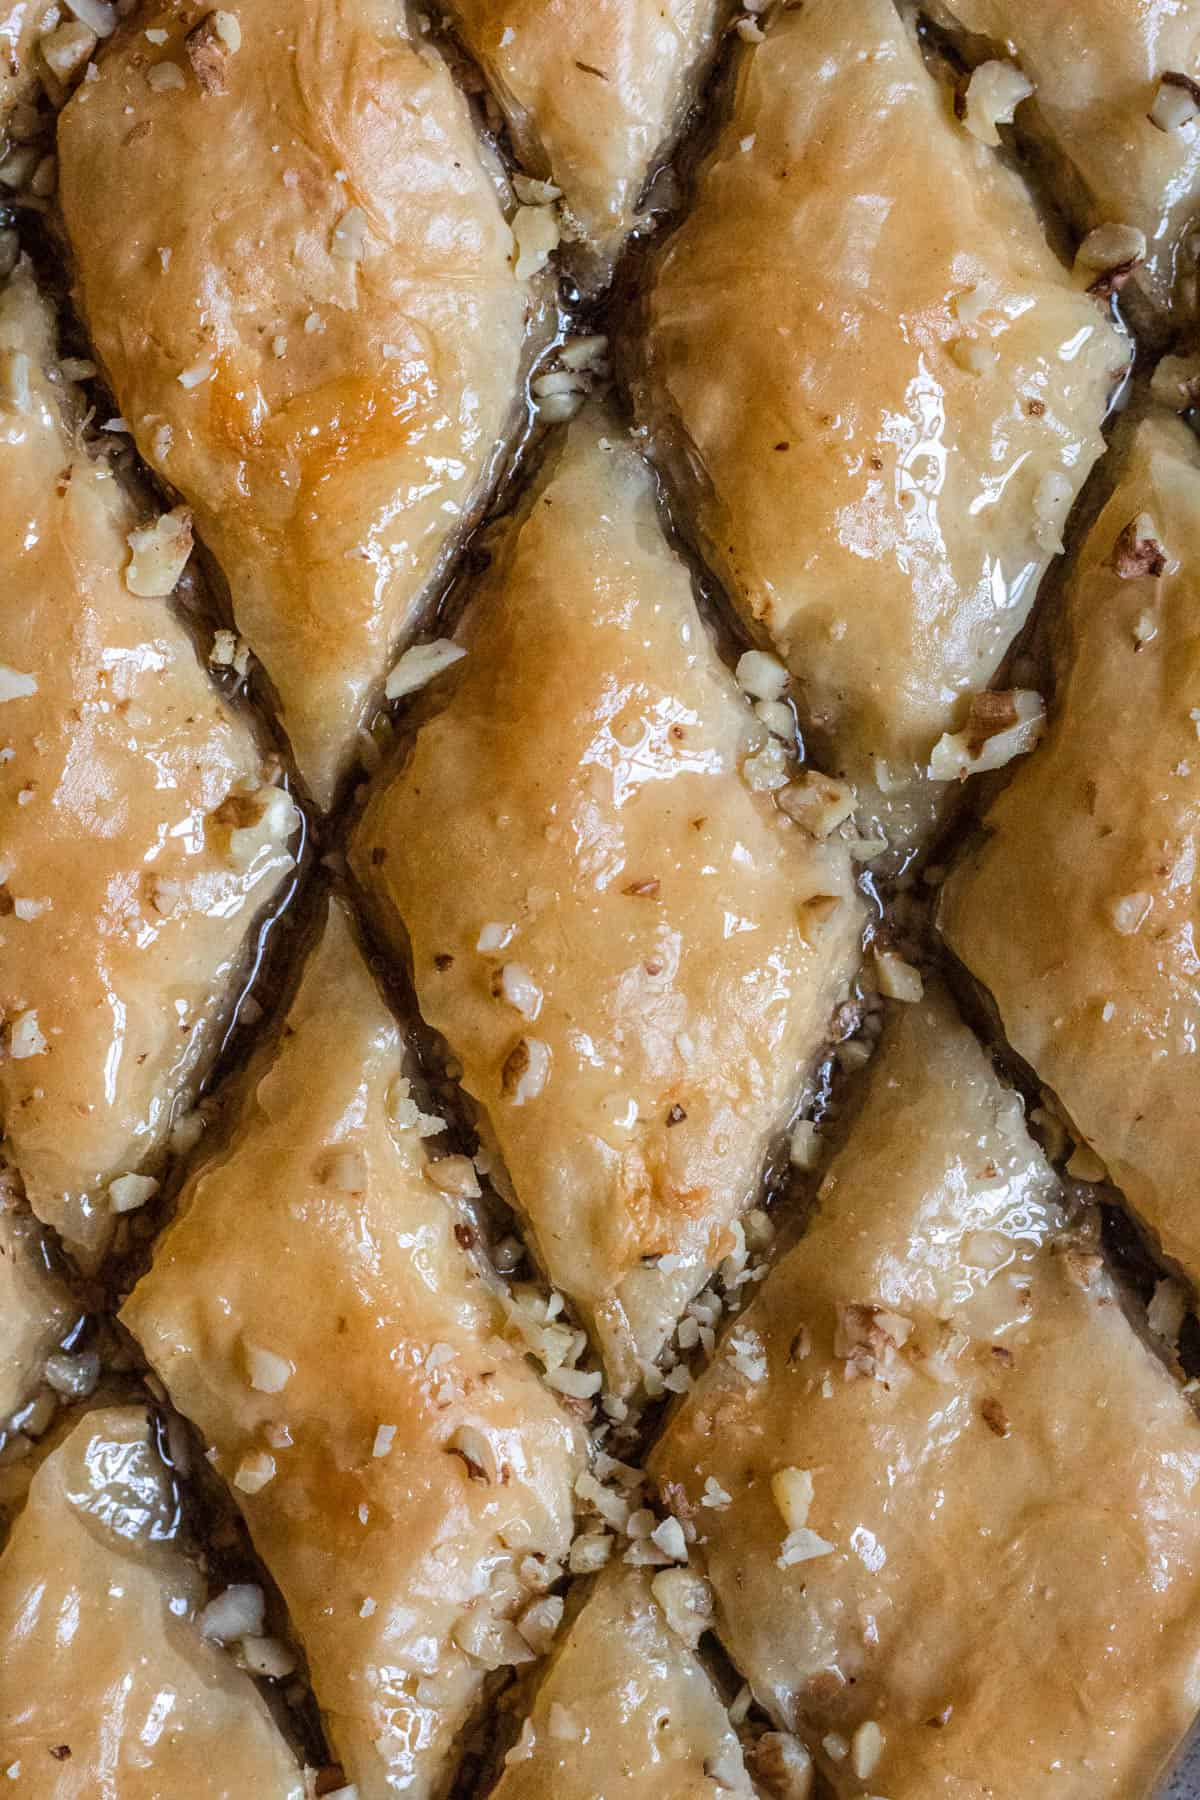 close up of pistachio baklava sprinkled with walnuts